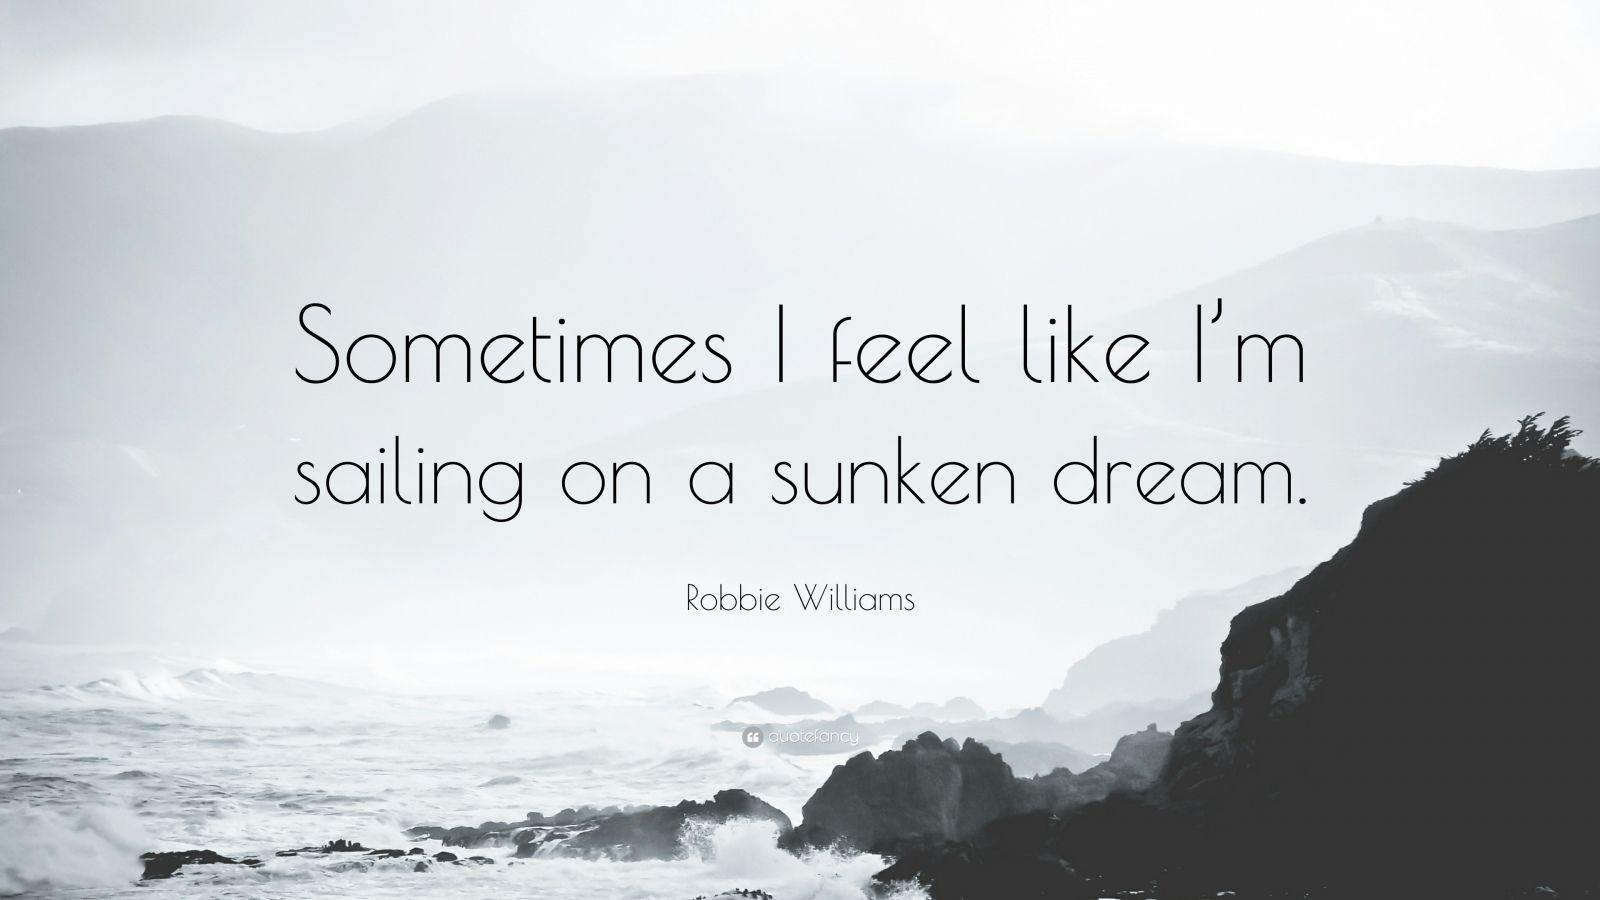 Robbie Williams Quotes (76 wallpapers) - Quotefancy